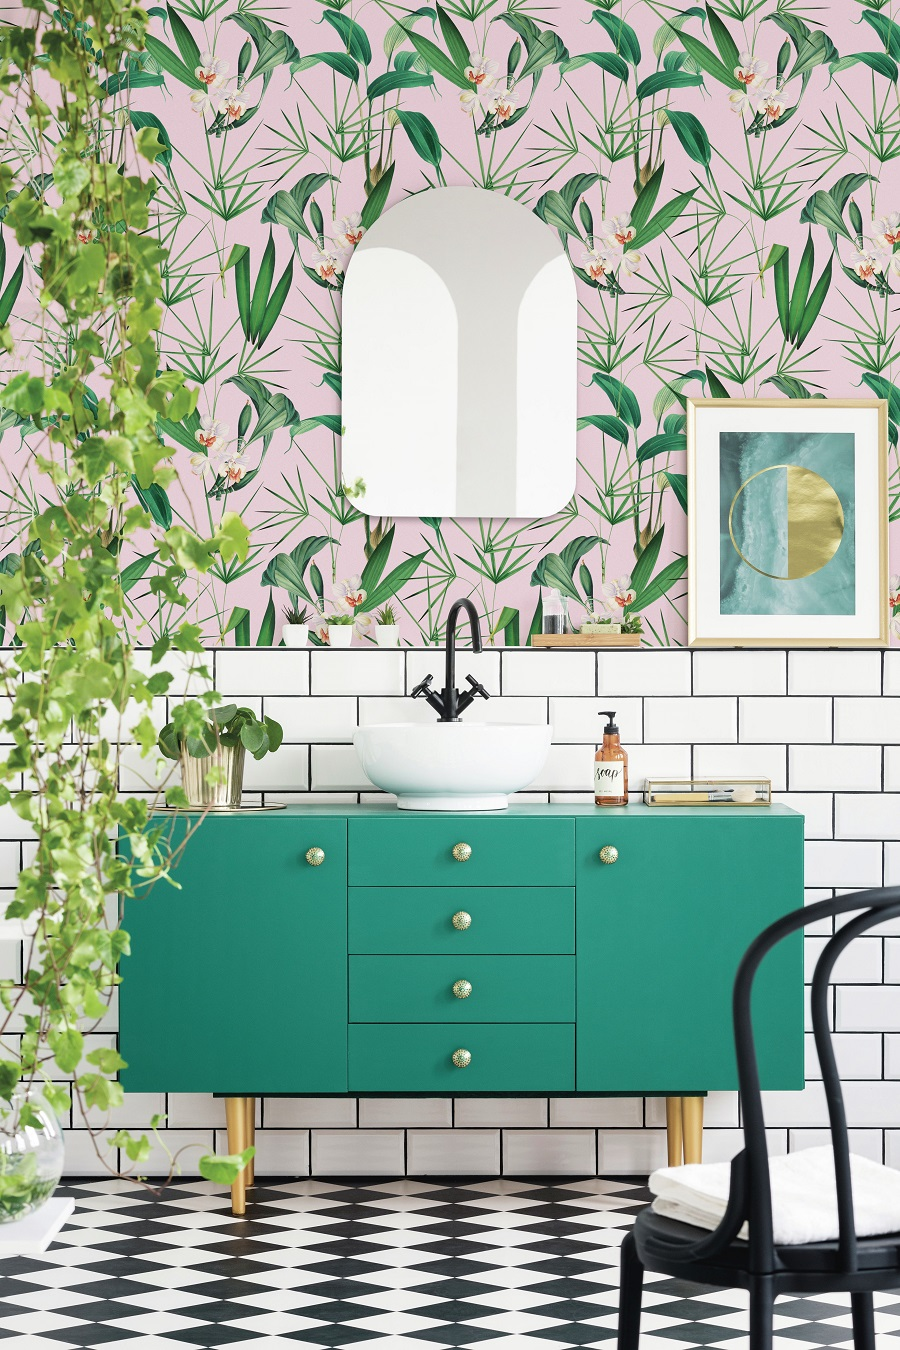 A Palm Springs Inspired Bathroom - Get The Look